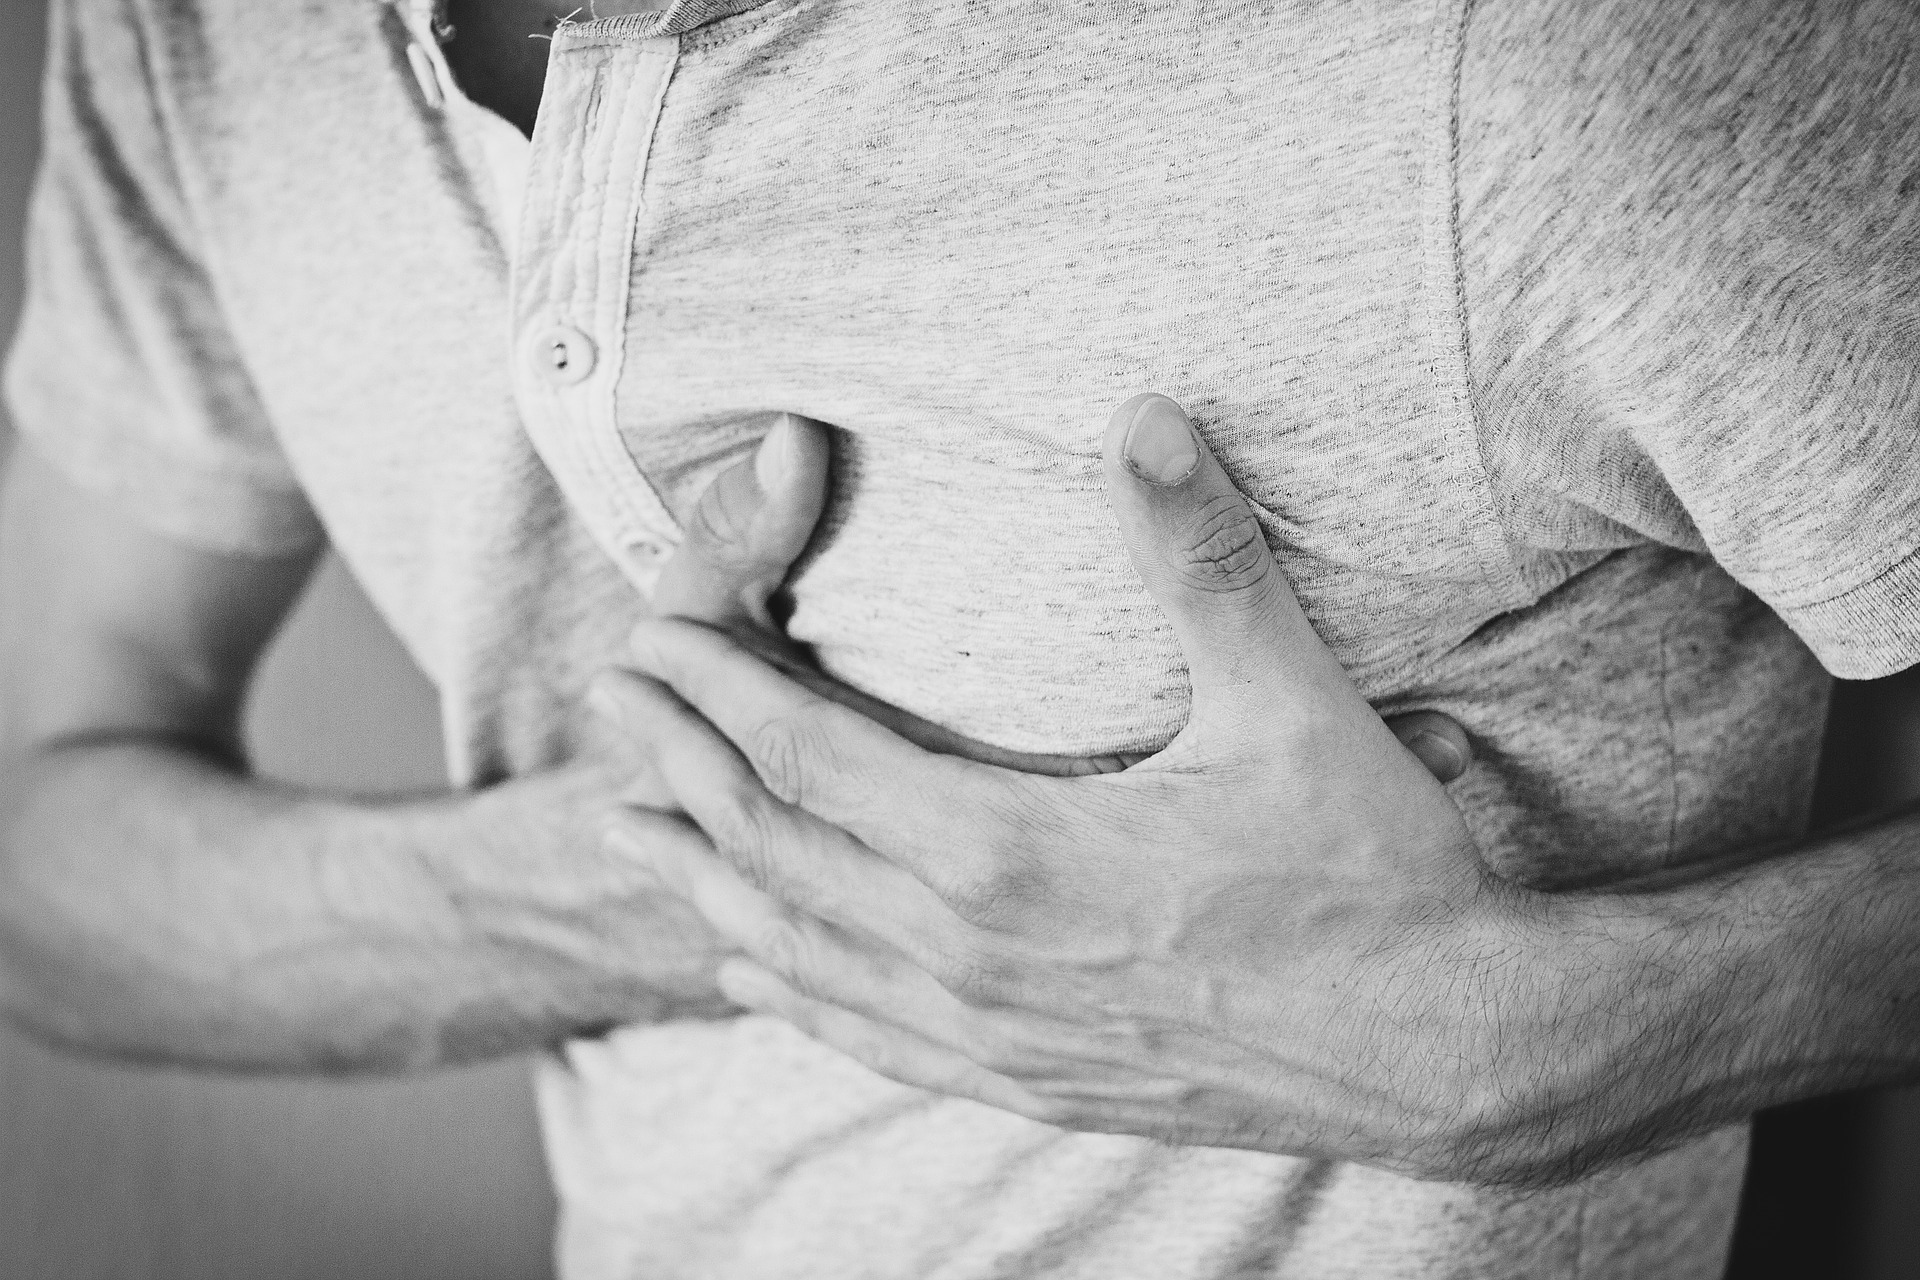 Painkiller diclofenac linked to increased heart risks in study